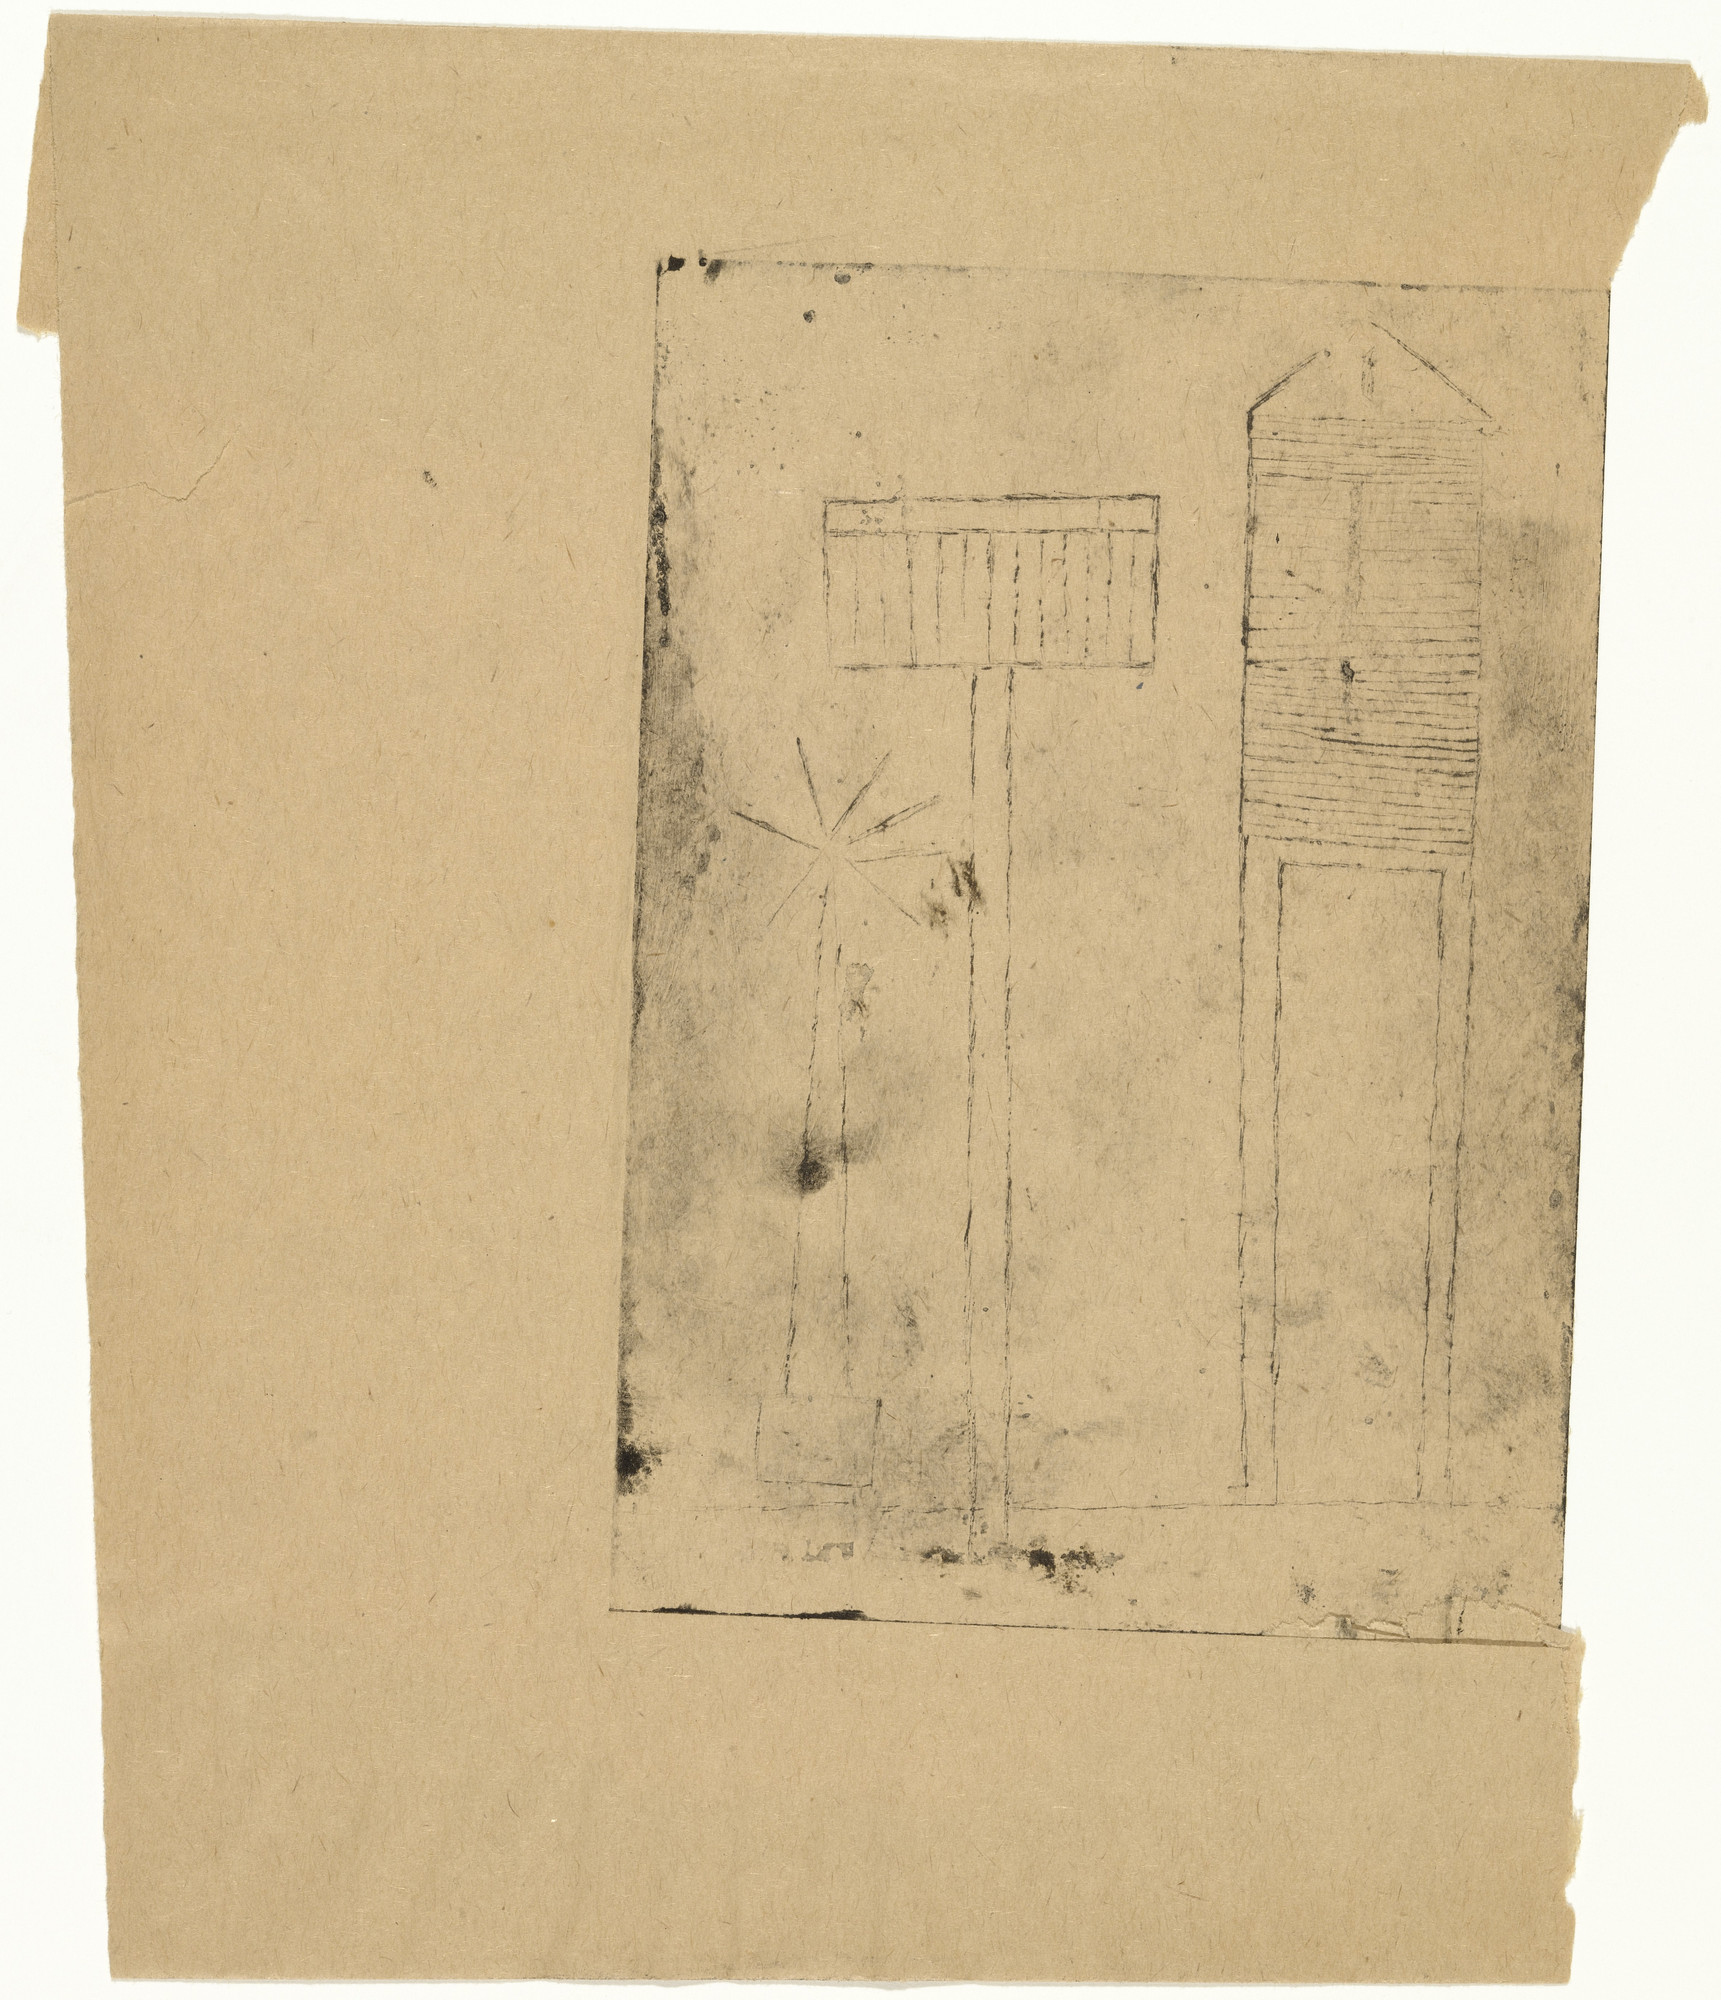 Louise Bourgeois. Plate 6 of 9, from the illustrated book, He Disappeared into Complete Silence. 1946-1947